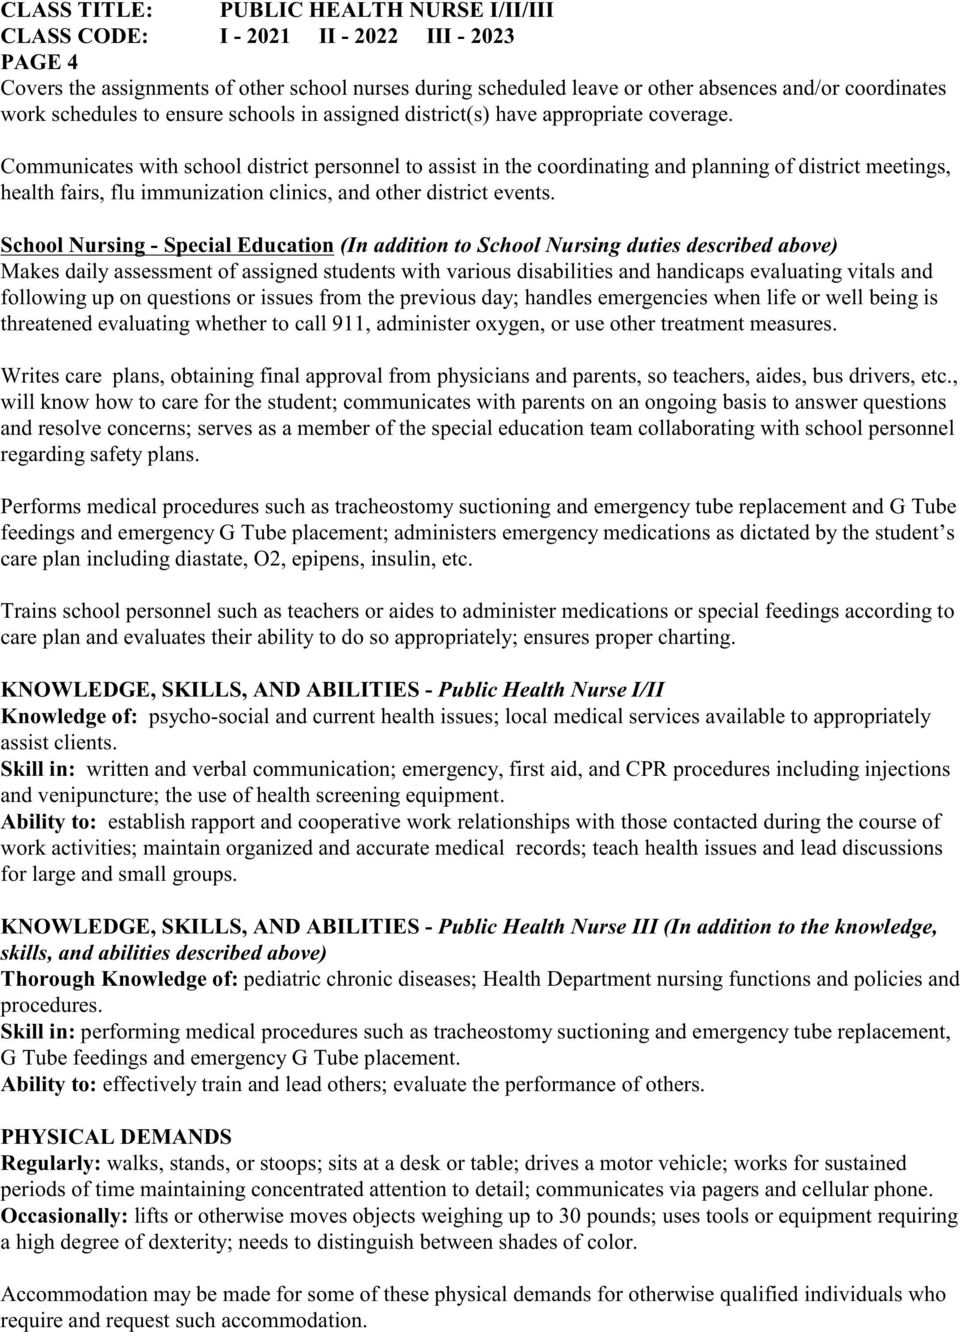 School Nursing - Special Education (In addition to School Nursing duties described above) Makes daily assessment of assigned students with various disabilities and handicaps evaluating vitals and